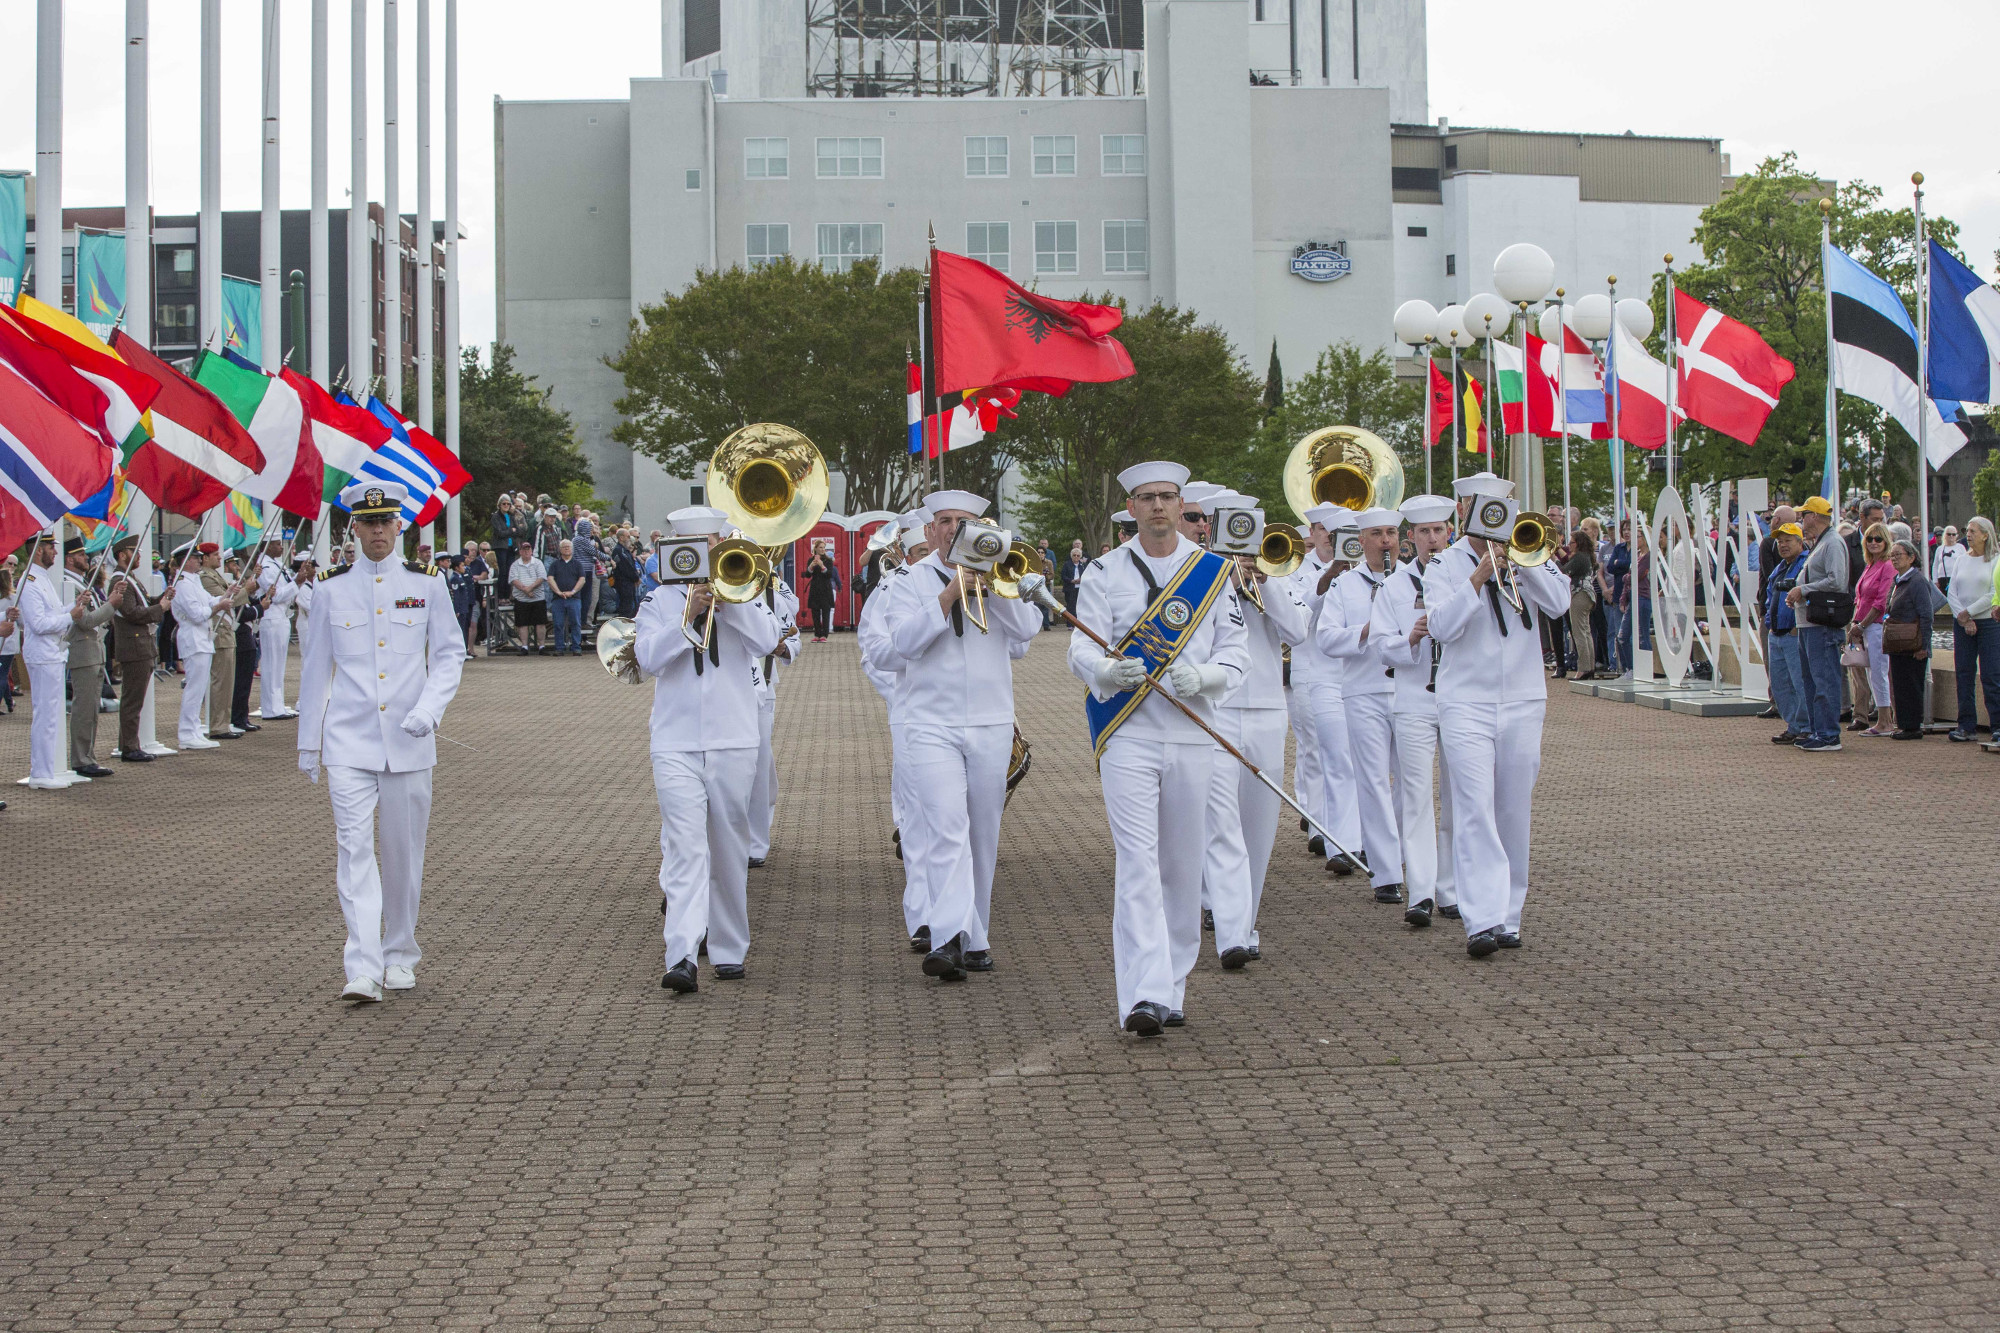 <b>Established in 1945, the U.S. Fleet Forces Band, known as The Finest of the Fleet, serves as the musical ambassador for Commander, U.S. Fleet Forces Command, in Norfolk, Virginia. Comprised of 45 Navy musicians, the band performs more than 400 engagements annually and regularly deploys to Central and South America.